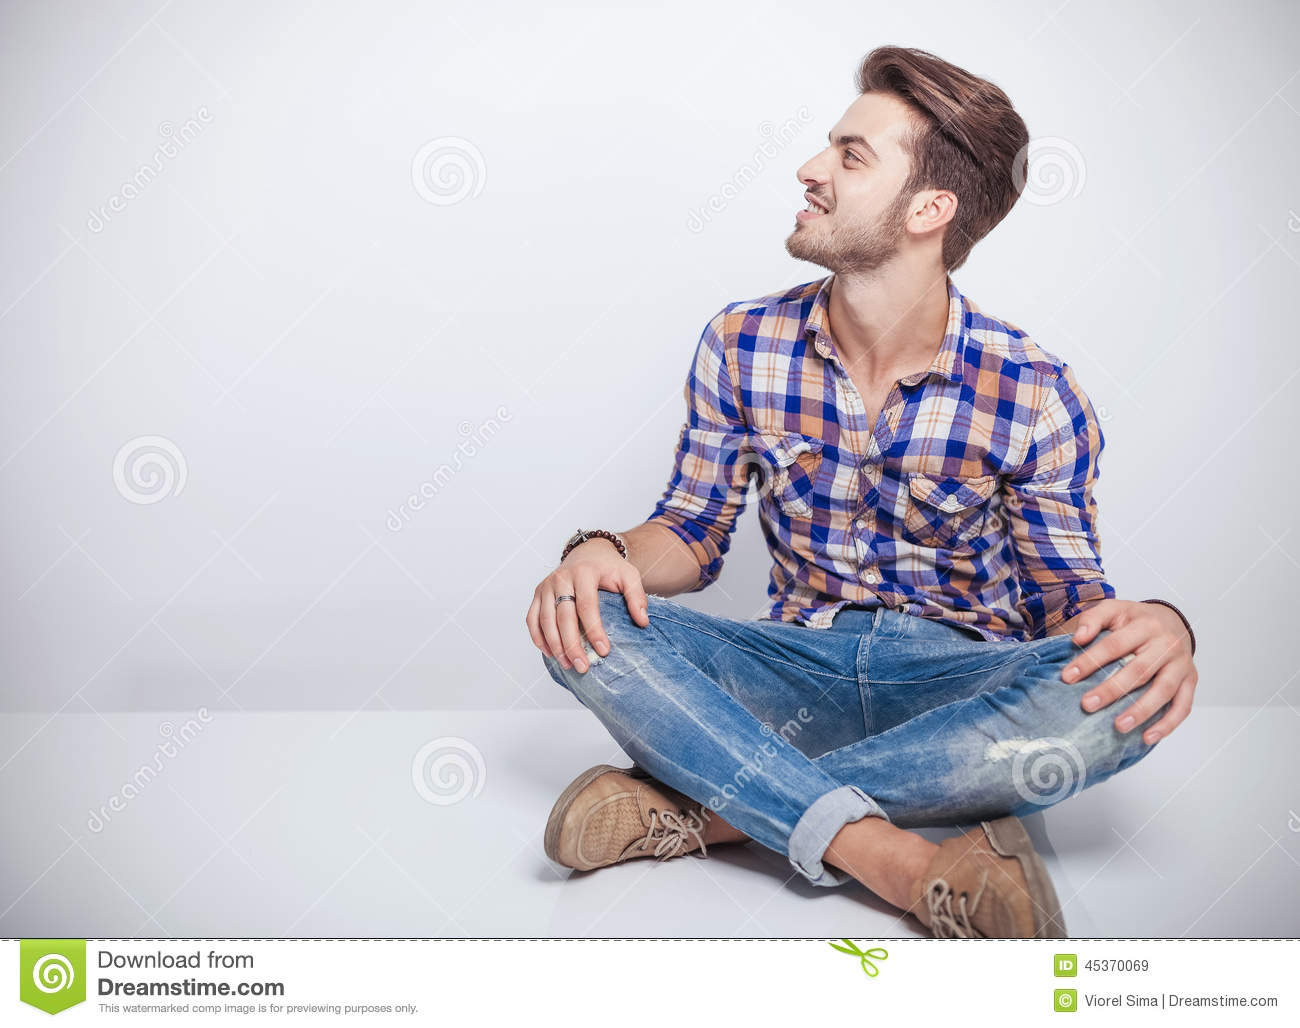 Young Man Sitting White Table His Legs Crosed Cool Looking Away Smiling Attractive Stylish Guy Model